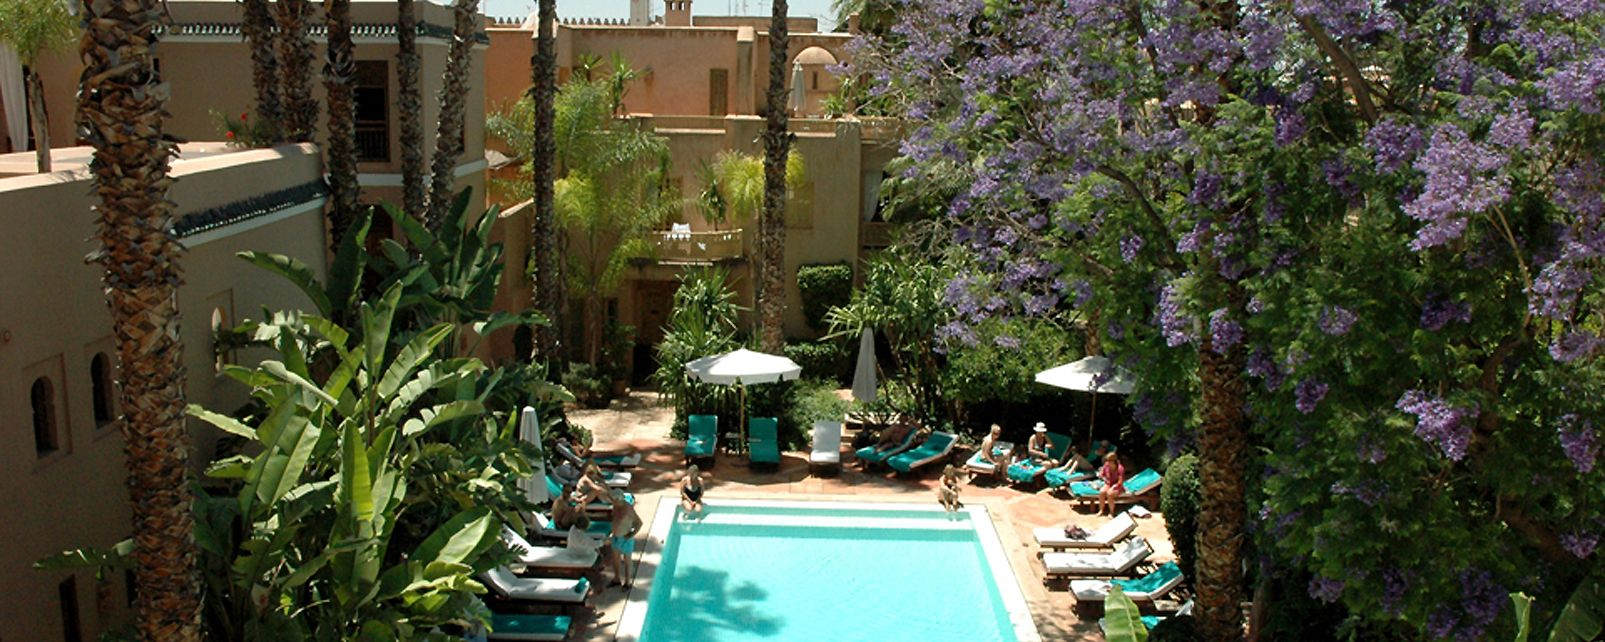 Hotel les jardins de la m dina in marrakech morocco for Cafe le jardin marrakech